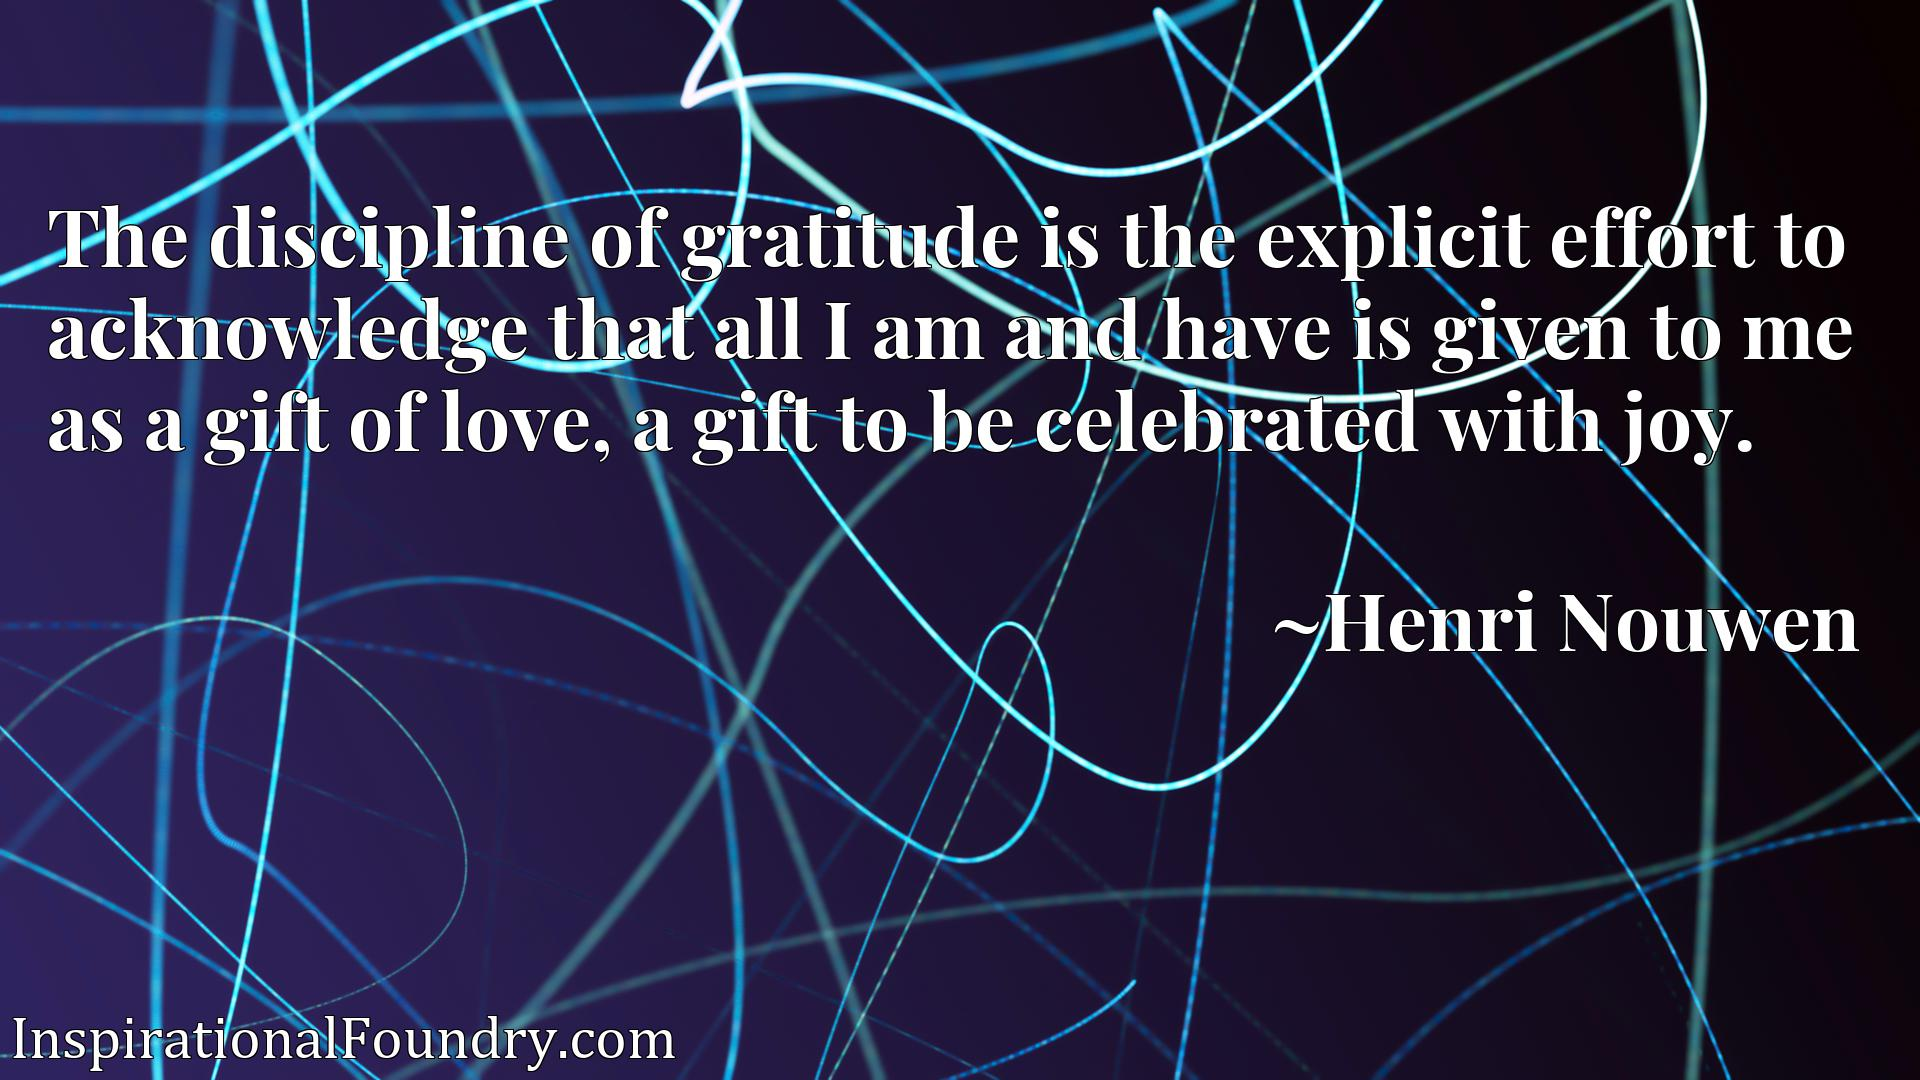 The discipline of gratitude is the explicit effort to acknowledge that all I am and have is given to me as a gift of love, a gift to be celebrated with joy.